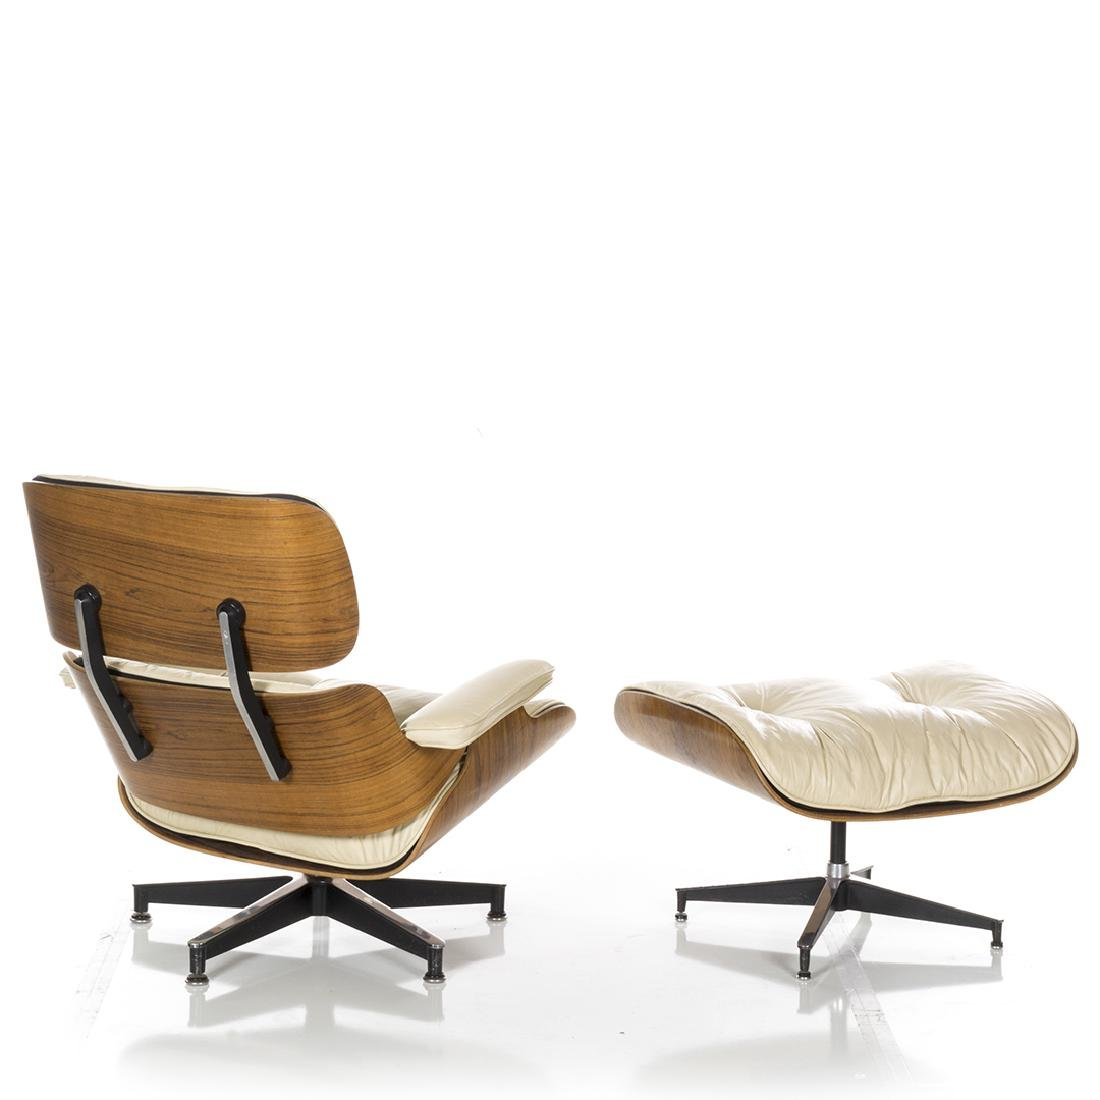 Charles Eames Lounge Chair and Ottoman - 5